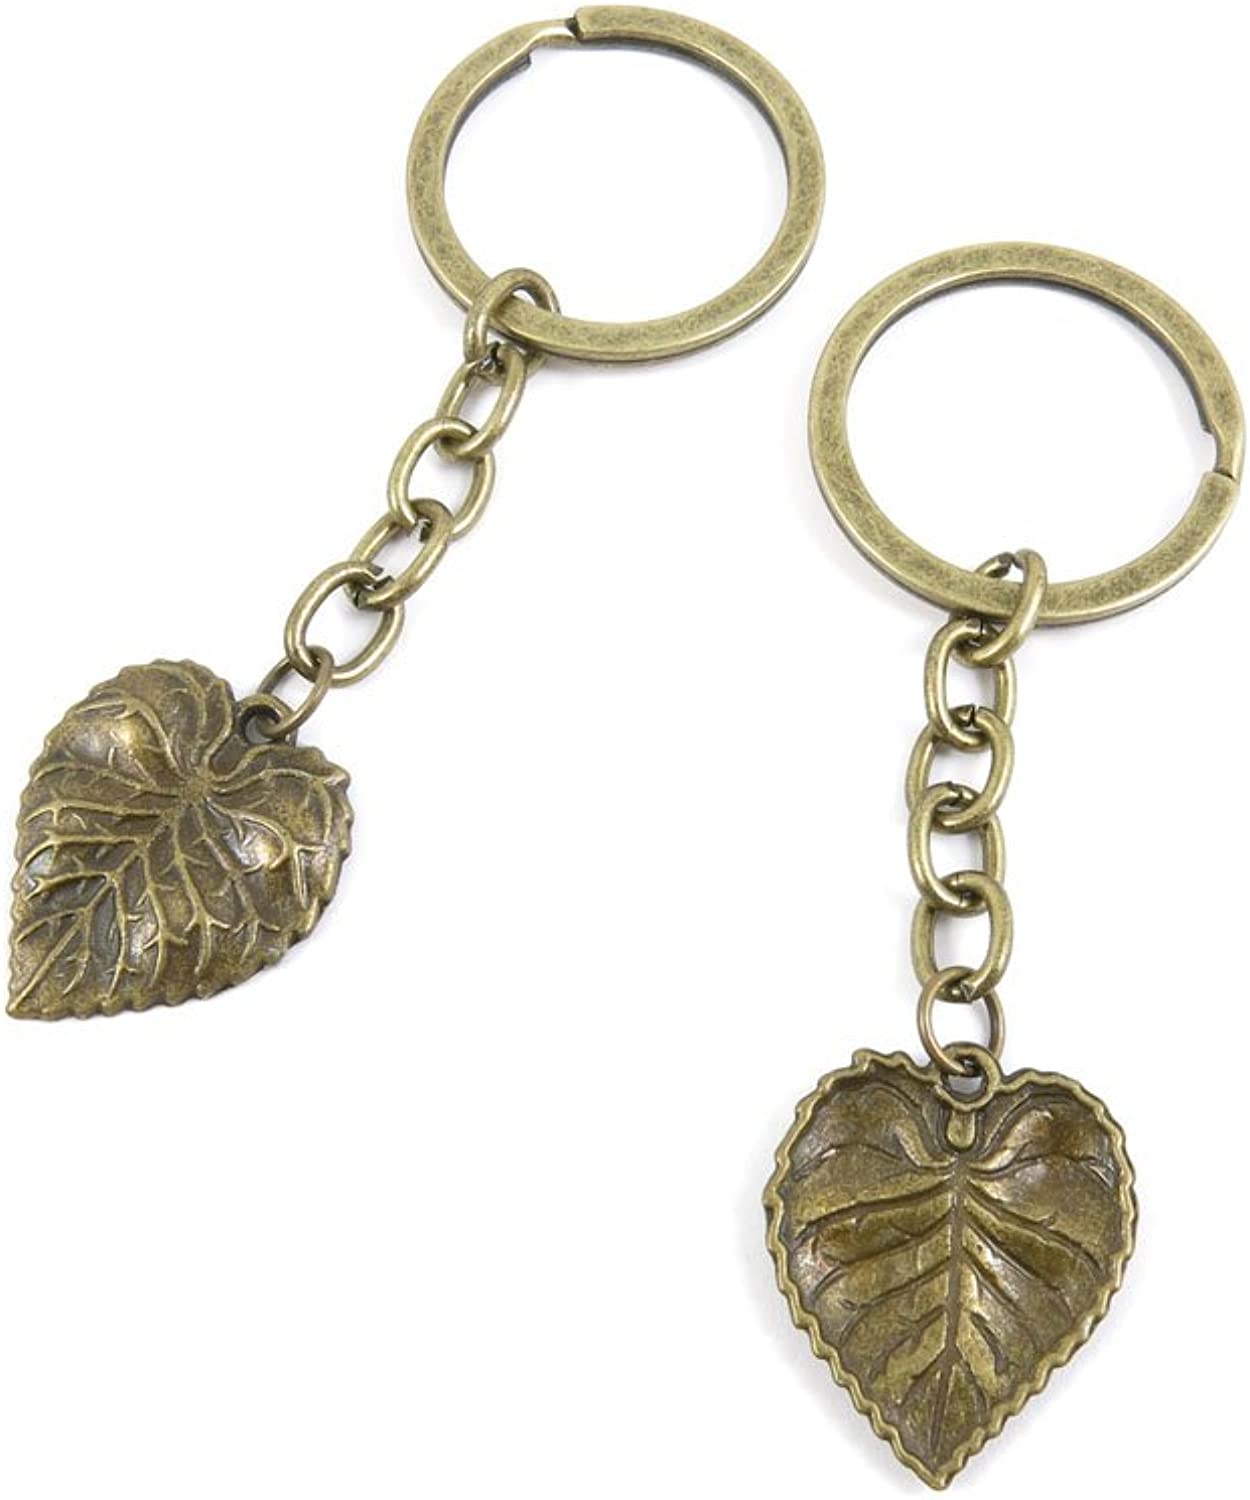 100 PCS Keyrings Keychains Key Ring Chains Tags Jewelry Findings Clasps Buckles Supplies Z4FM4 Tree Leaf